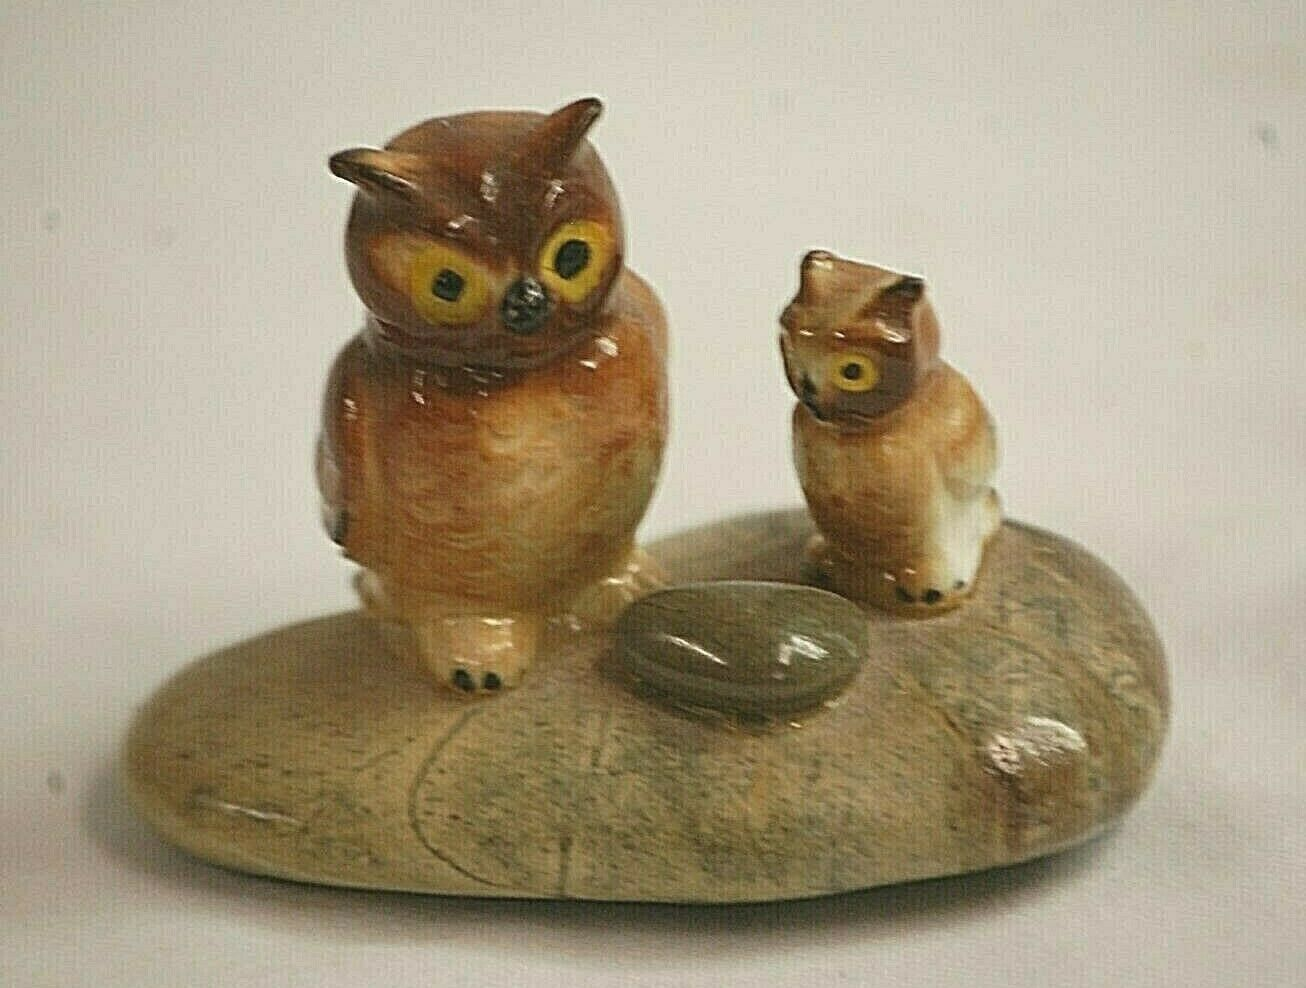 Primary image for Classic Style Two Owl Figurines on Rock Shadow Box Shelf Decor